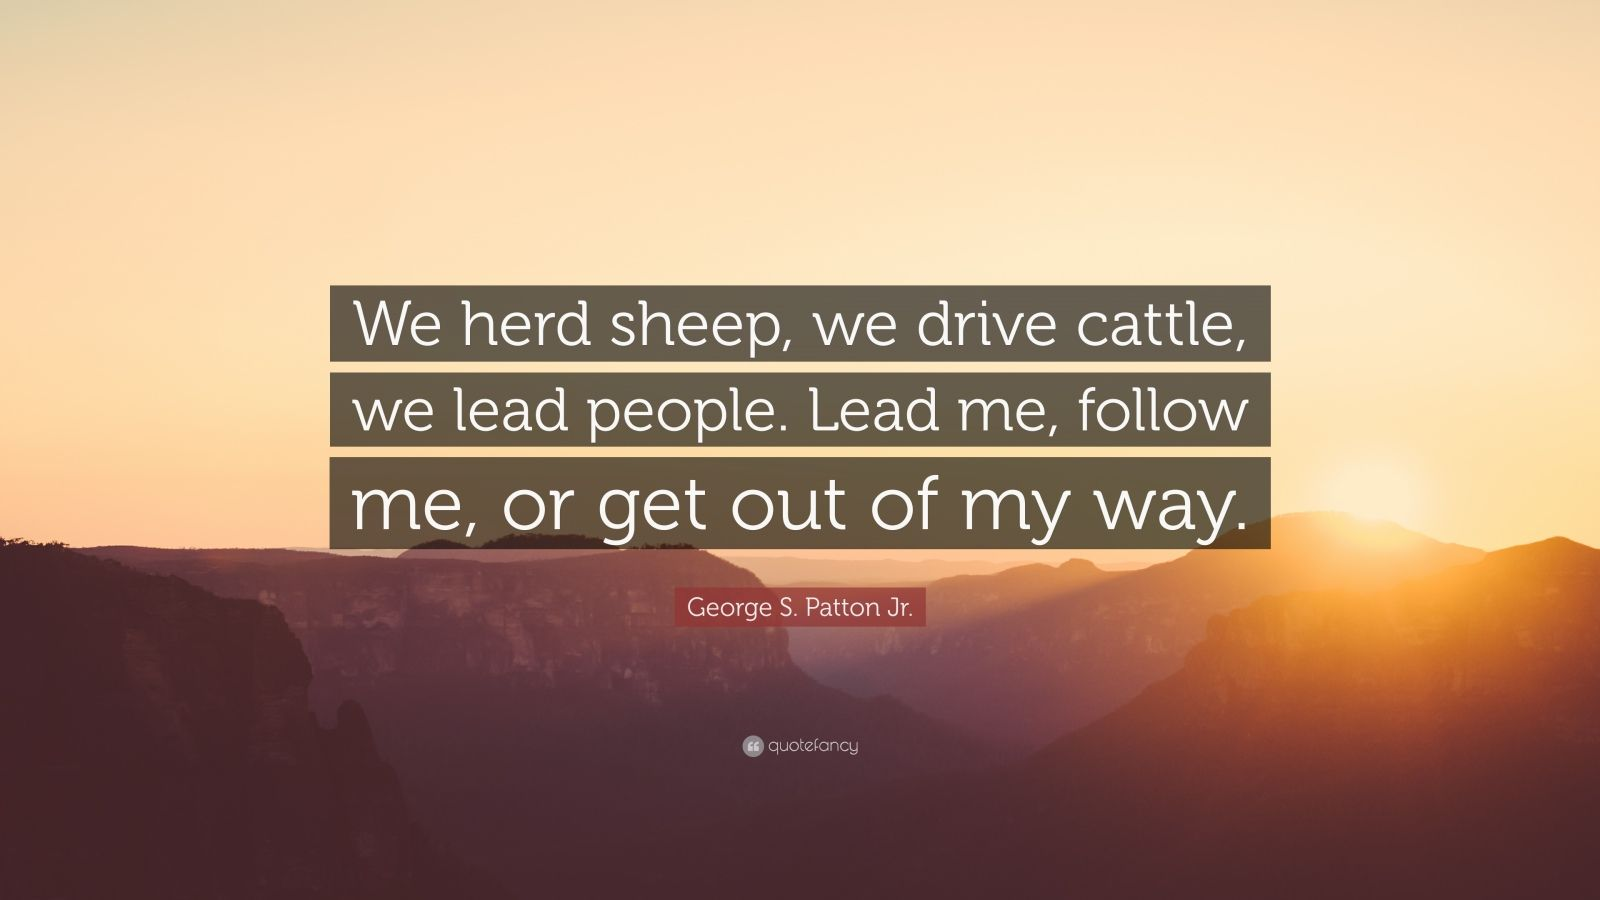 """George S. Patton Jr. Quote: """"We herd sheep, we drive cattle, we lead people. Lead me, follow me, or get out of my way."""""""